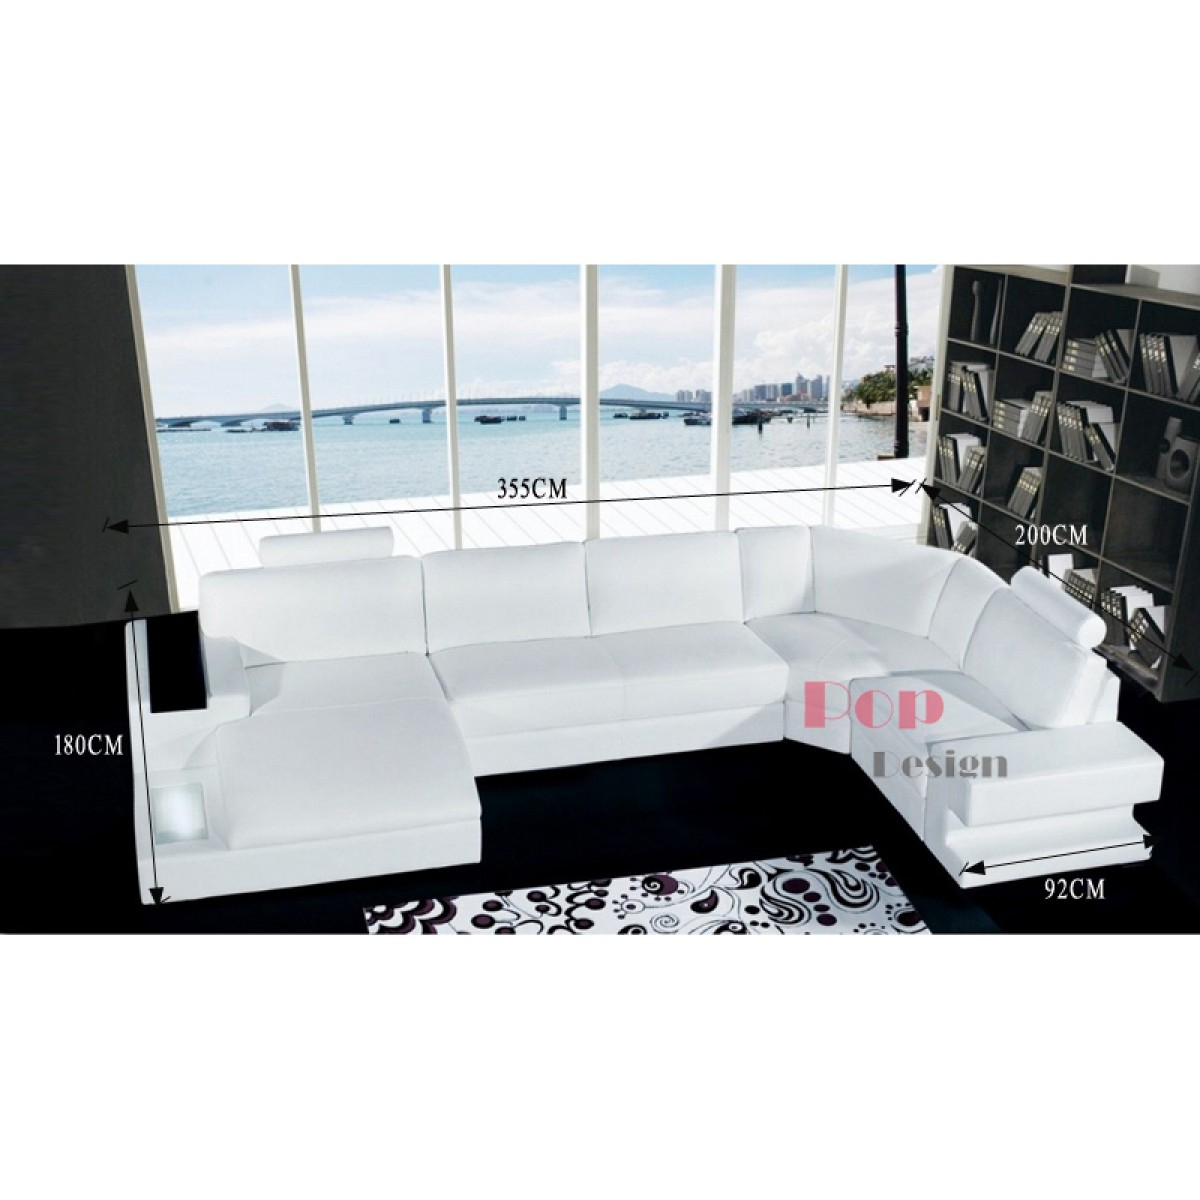 Canape D Angle Cuir but Impressionnant Galerie Canape D Angle 200 Cm Affordable Canap Dangle Gigogne Convertible